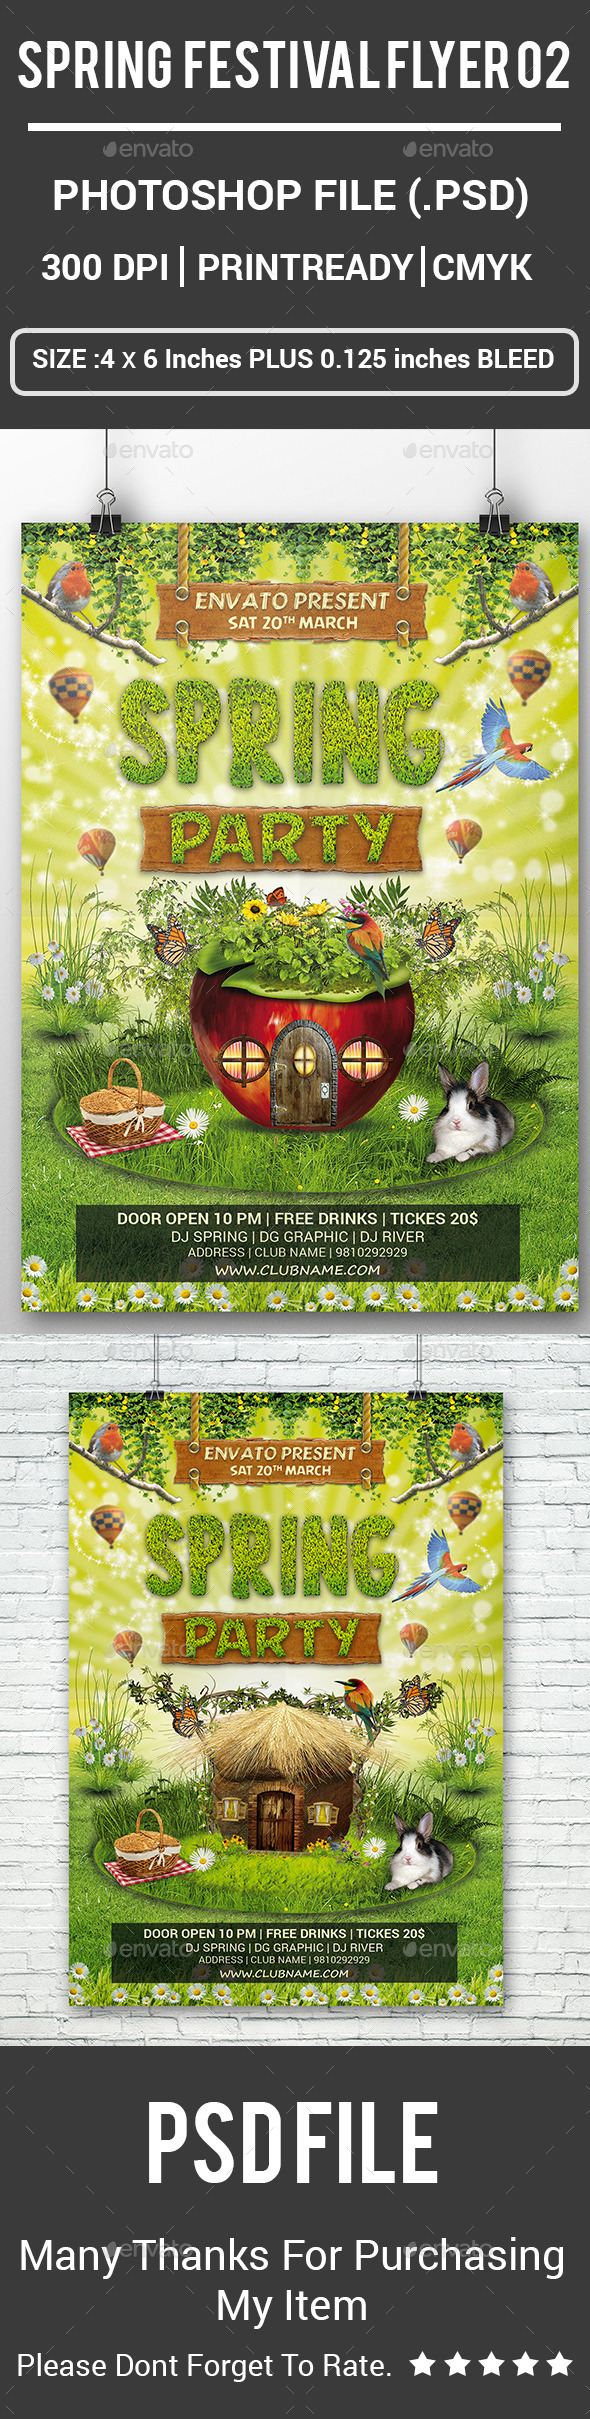 Spring Festival Flyer 02 - Events Flyers